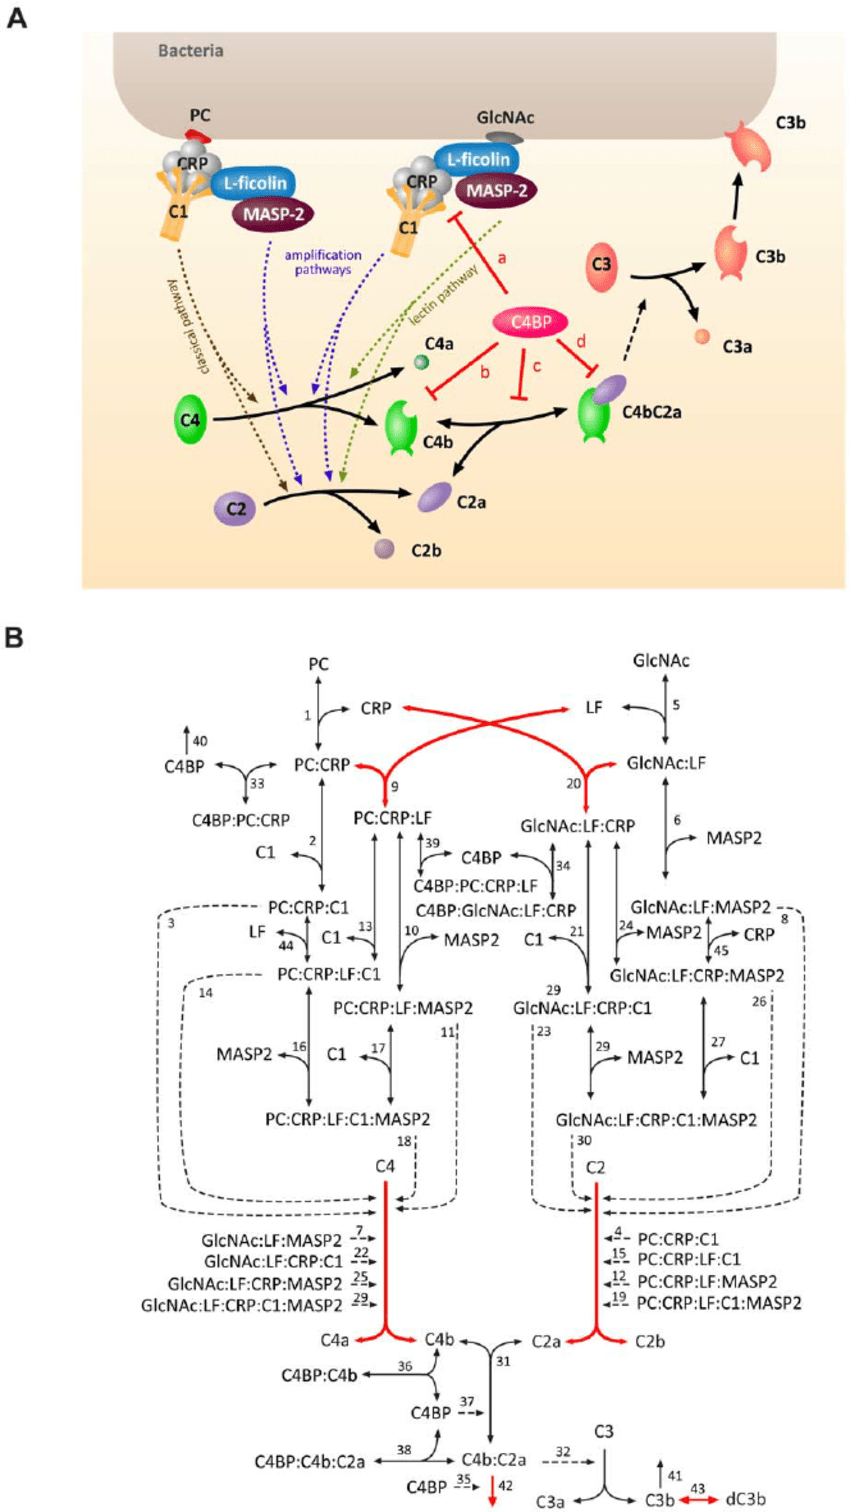 medium resolution of simplified schematic representation of the complement system and reaction network diagram of the mathematical model